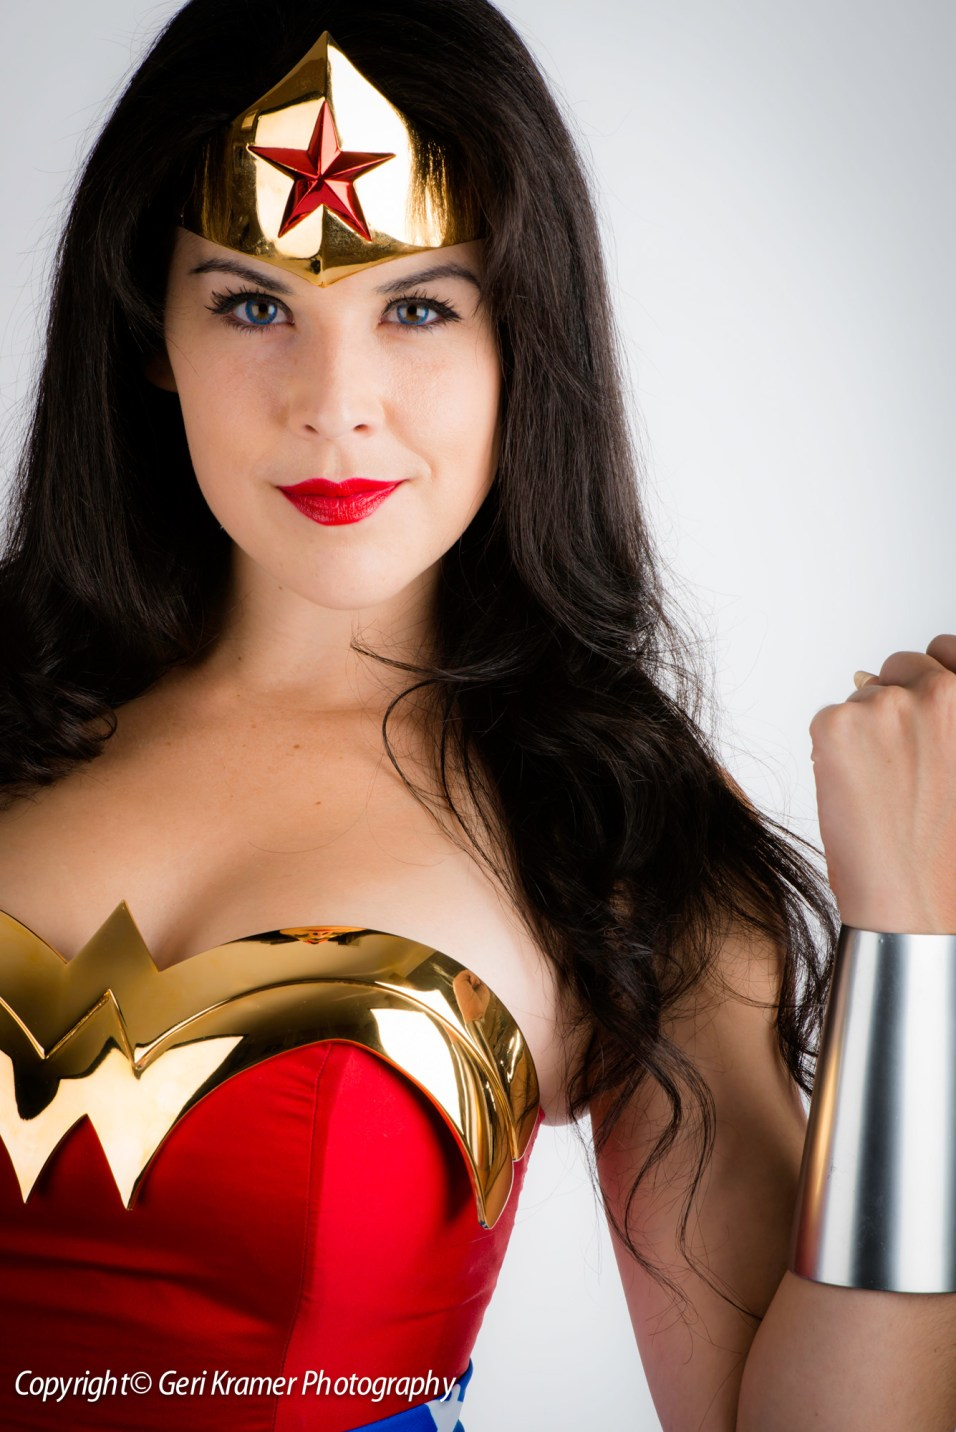 Wonder_Woman-Geri_Kramer (1)